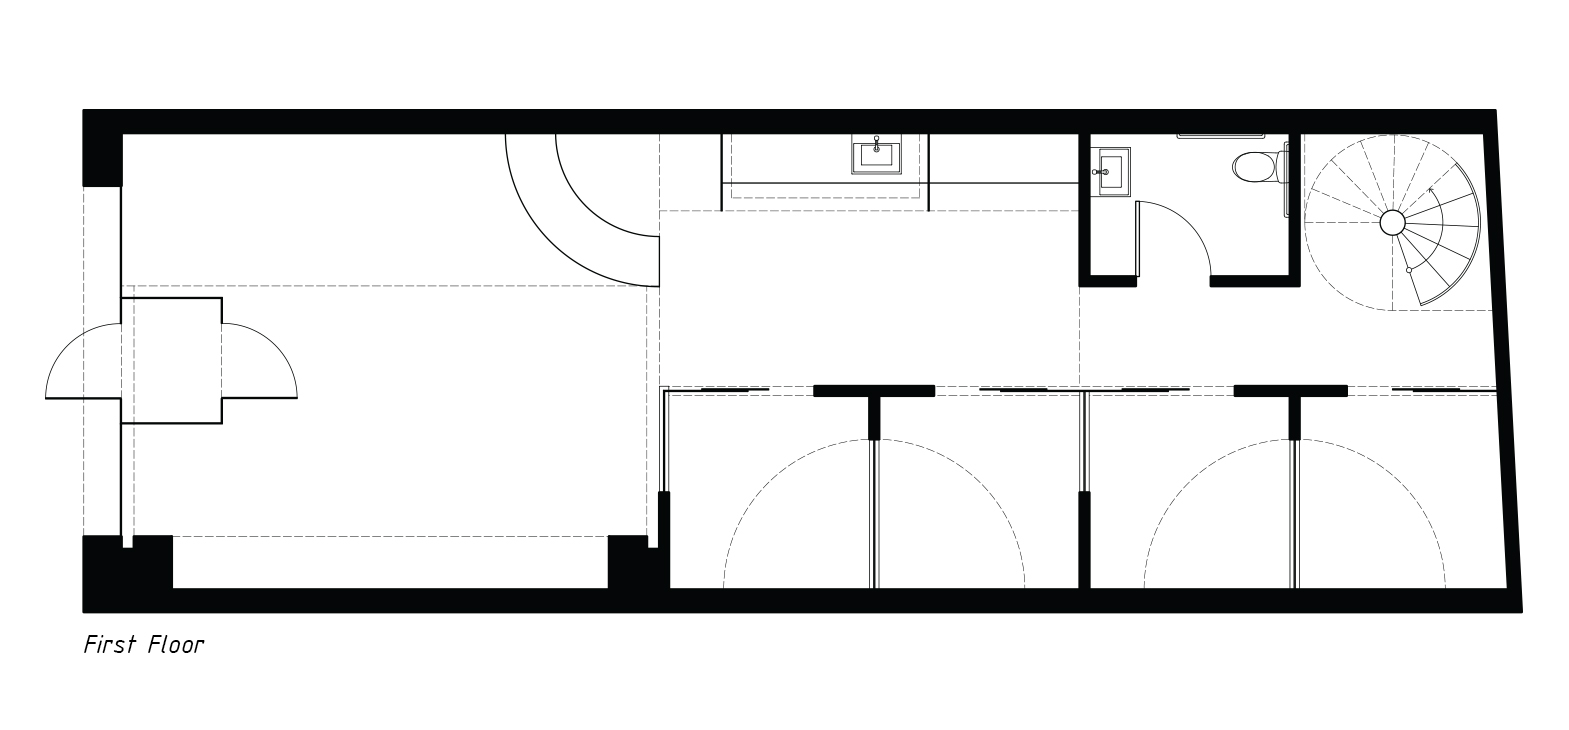 TB_GREENE_FIRST FLOOR_PLAN